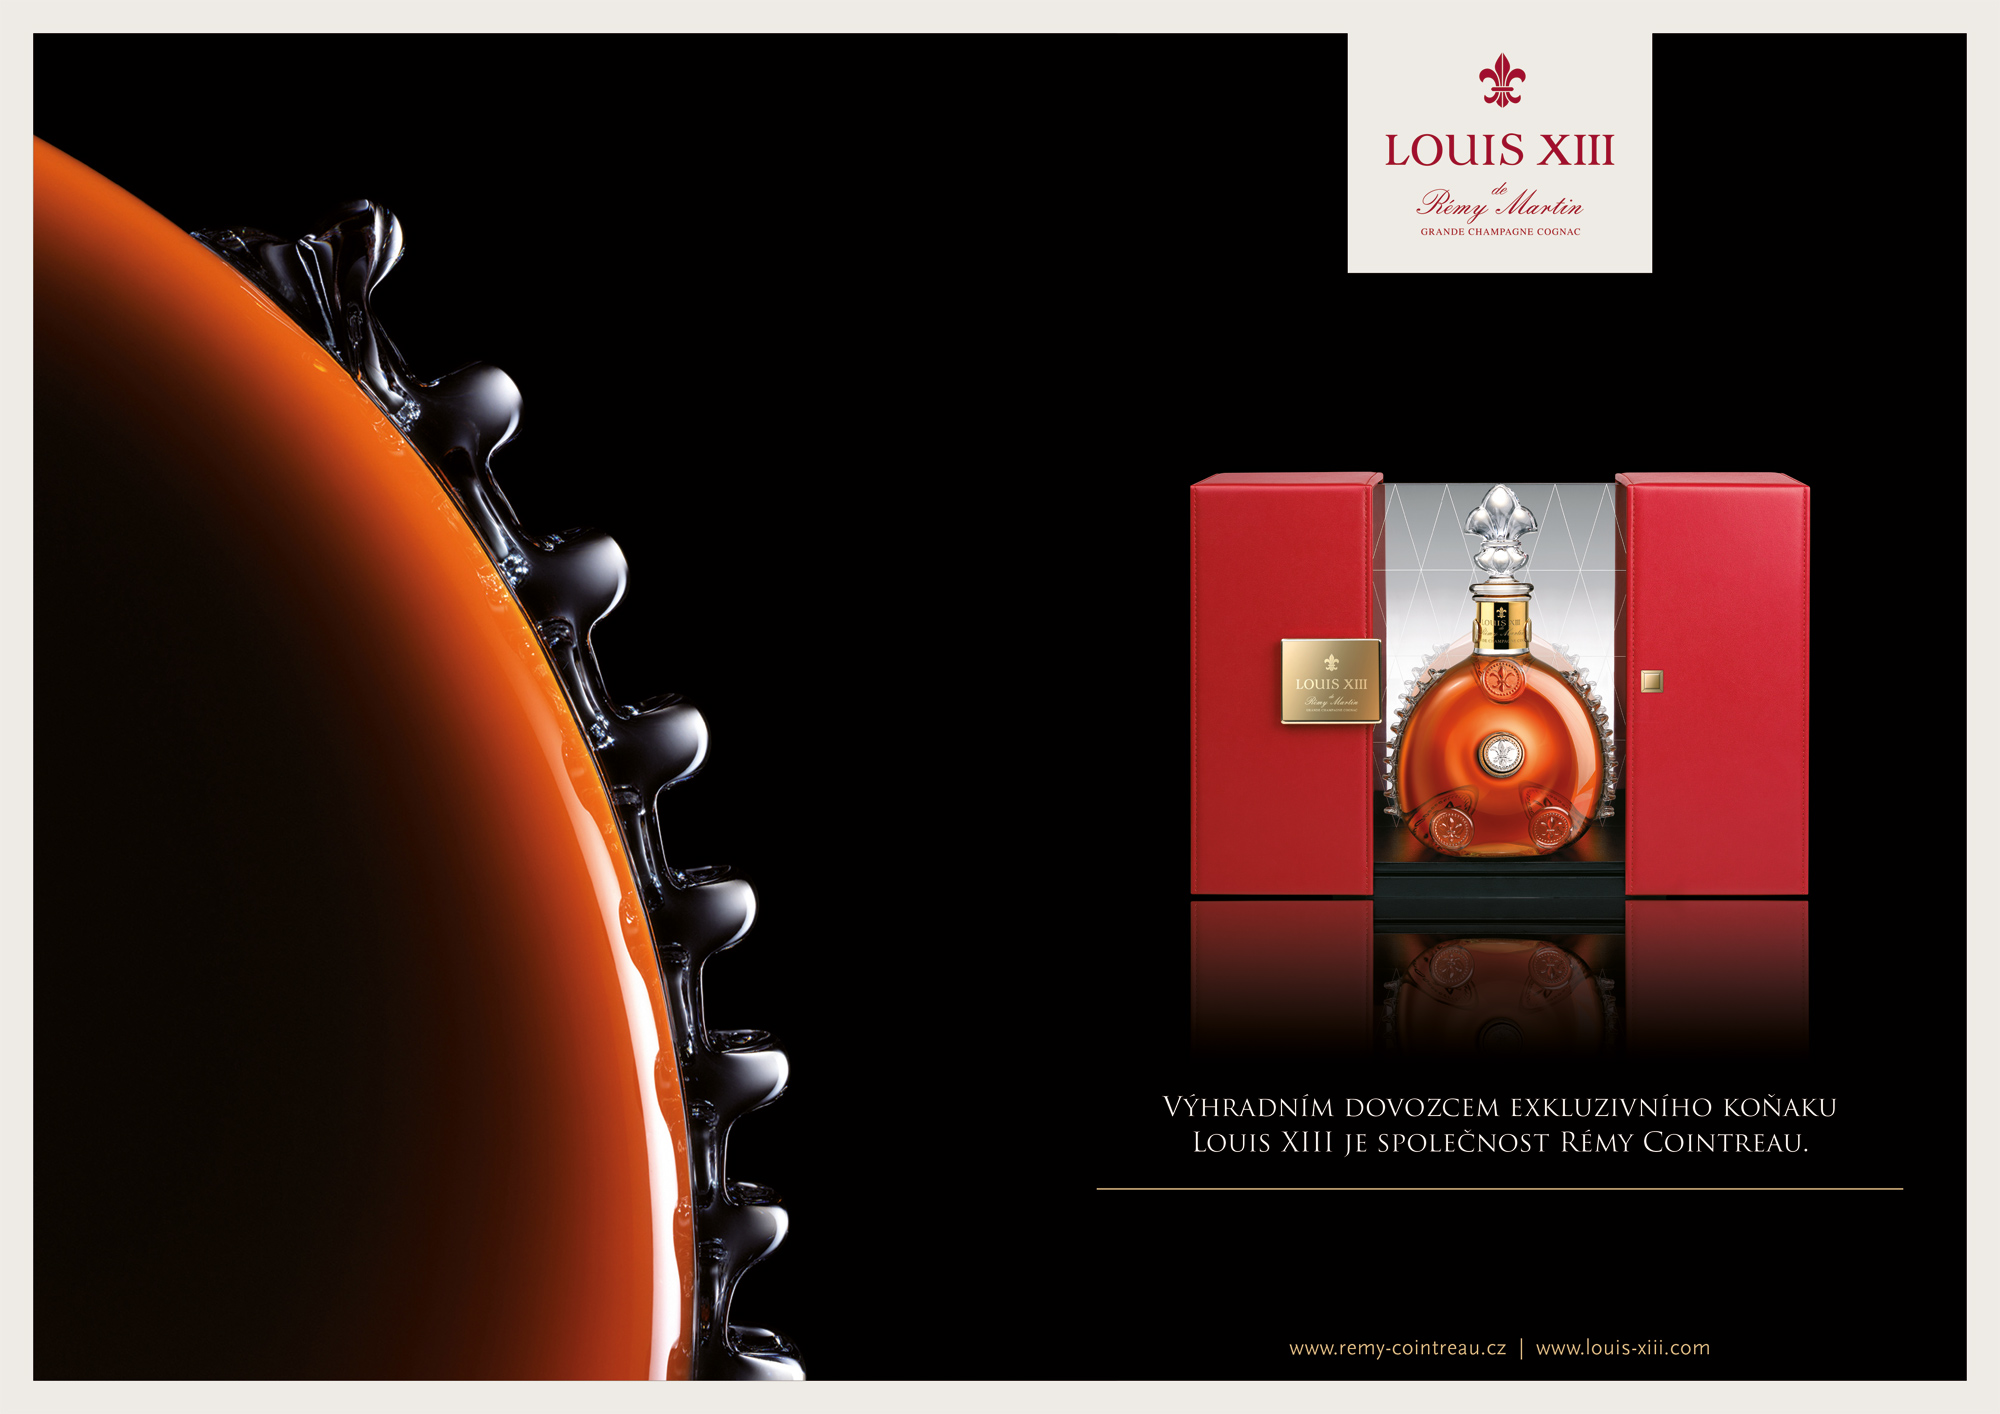 [album/Products_Model_Product/60/Remy_Cointreau_LXIII_1.jpg]